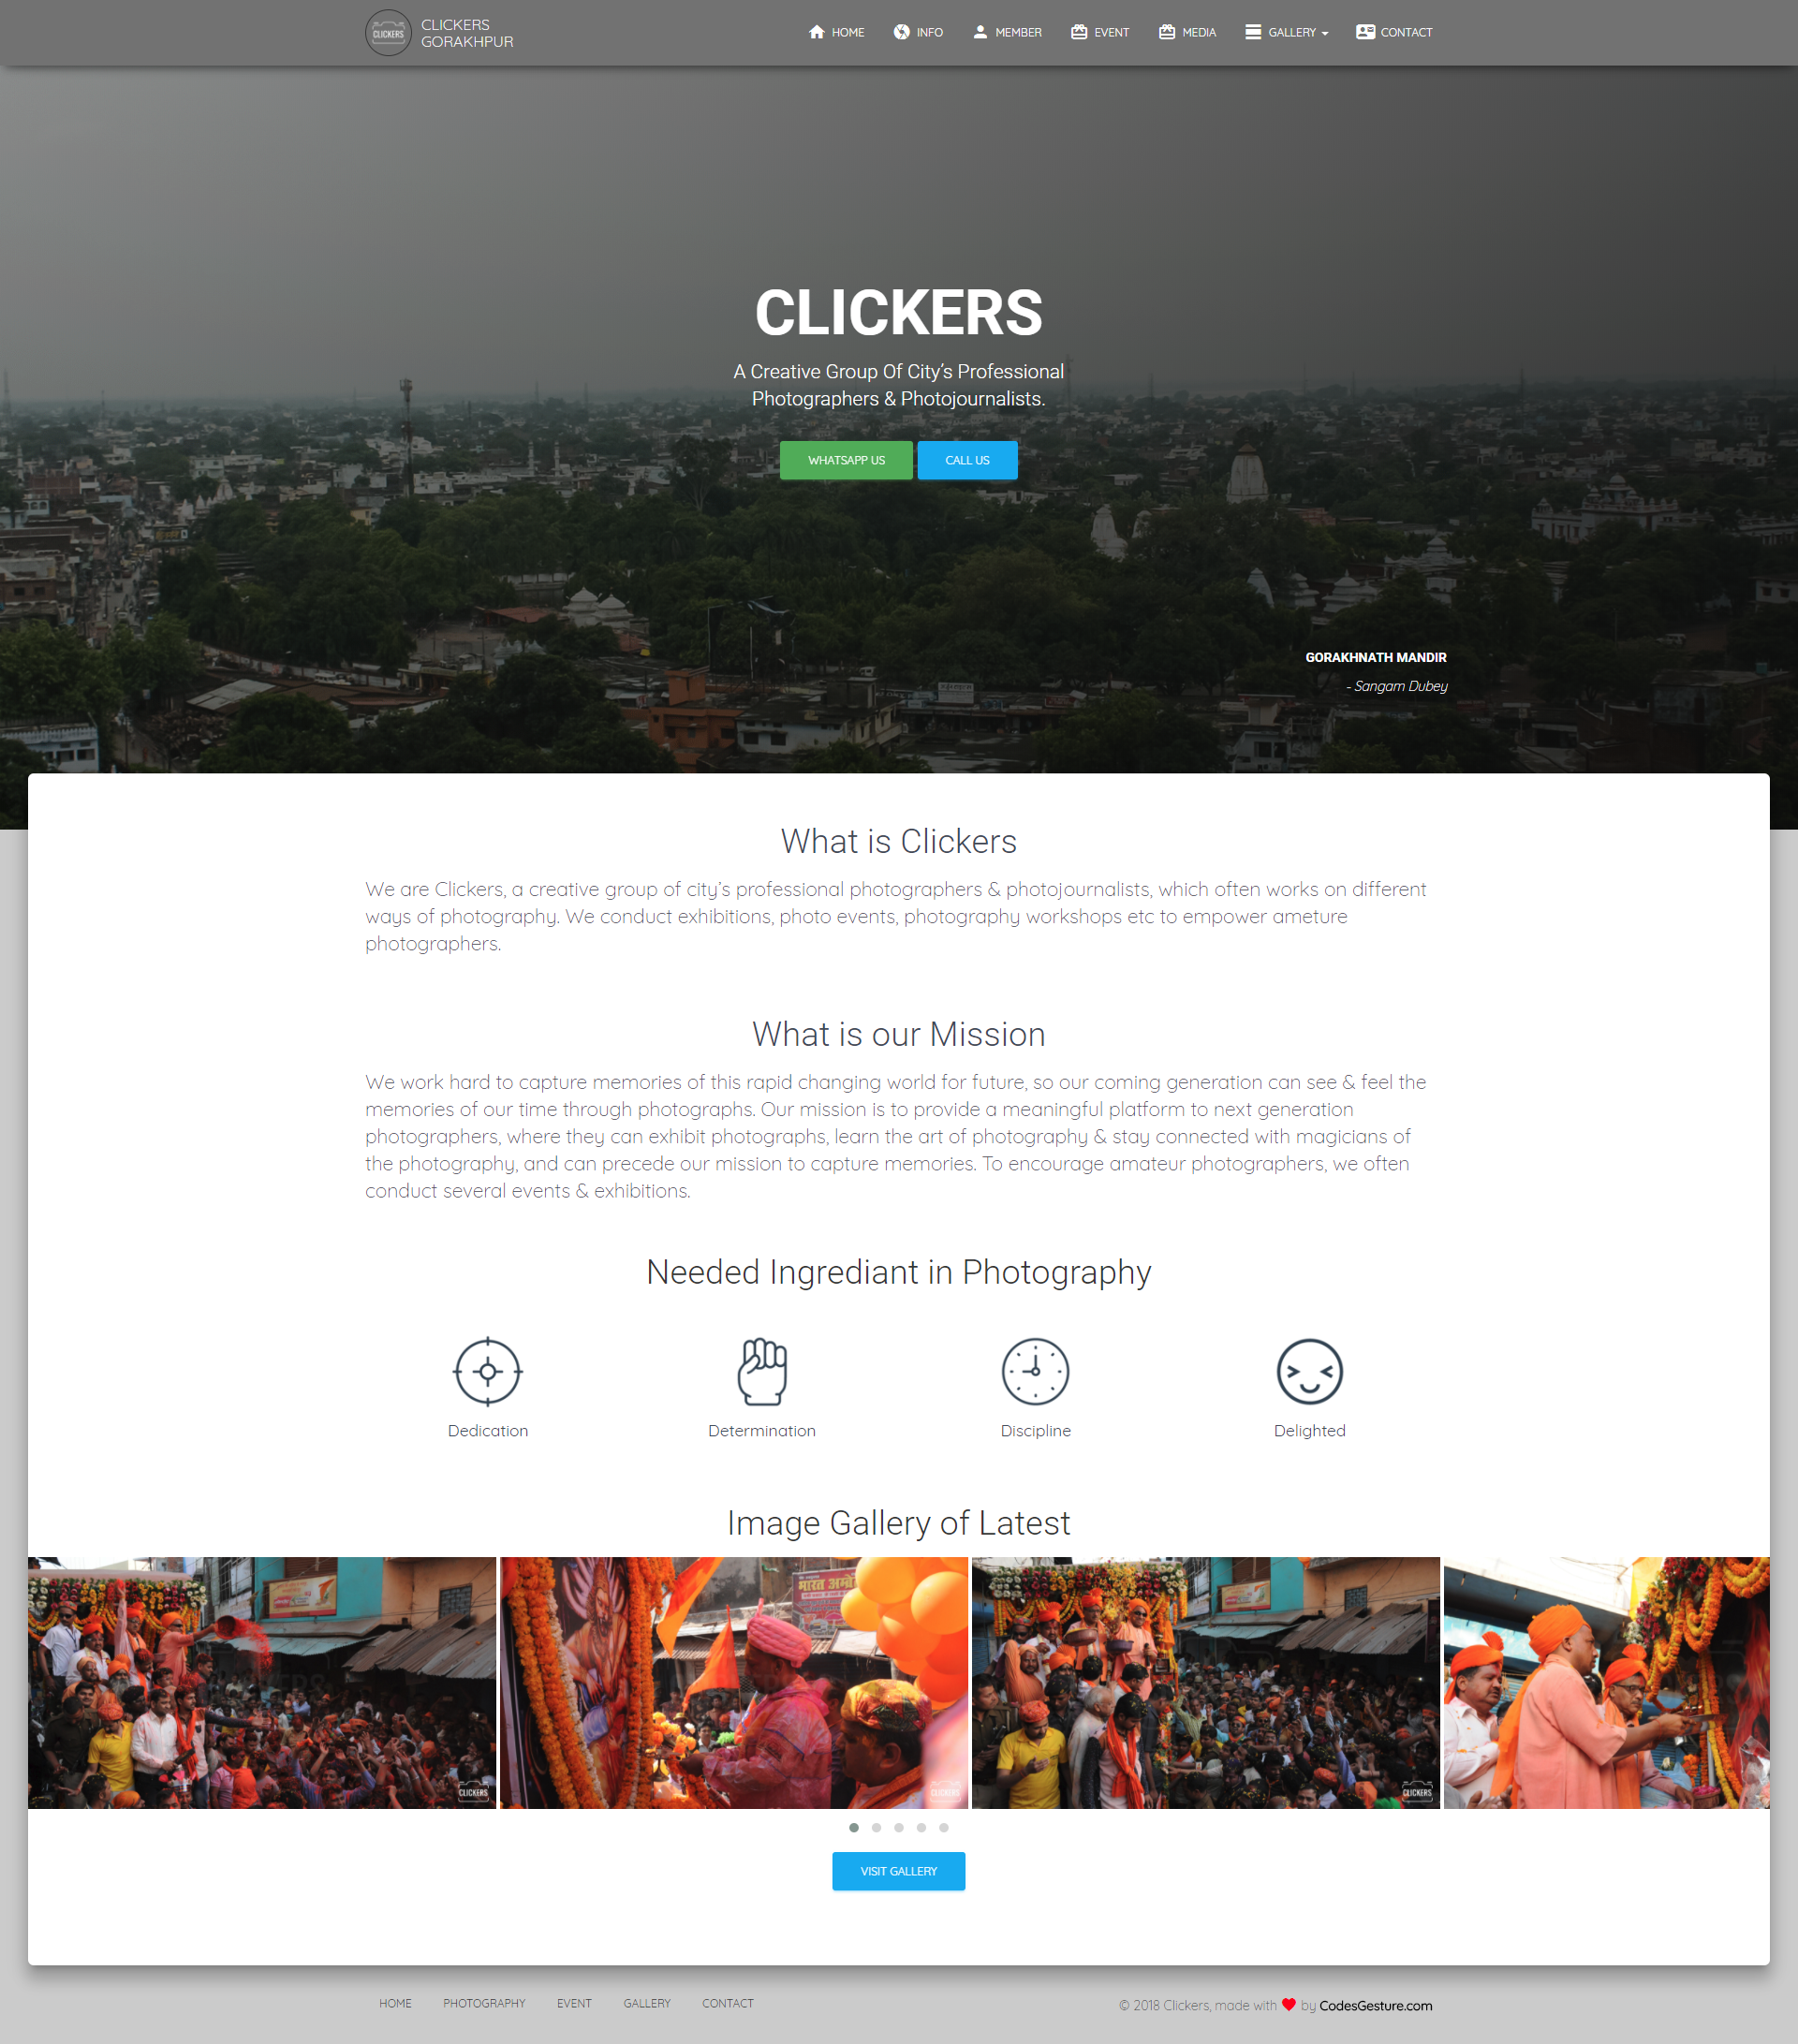 Clickers Website Designed By Codesgesture The Website Address Is As Www Clickers Ecommerce Website Development Ecommerce Website Design Graphic Design Company